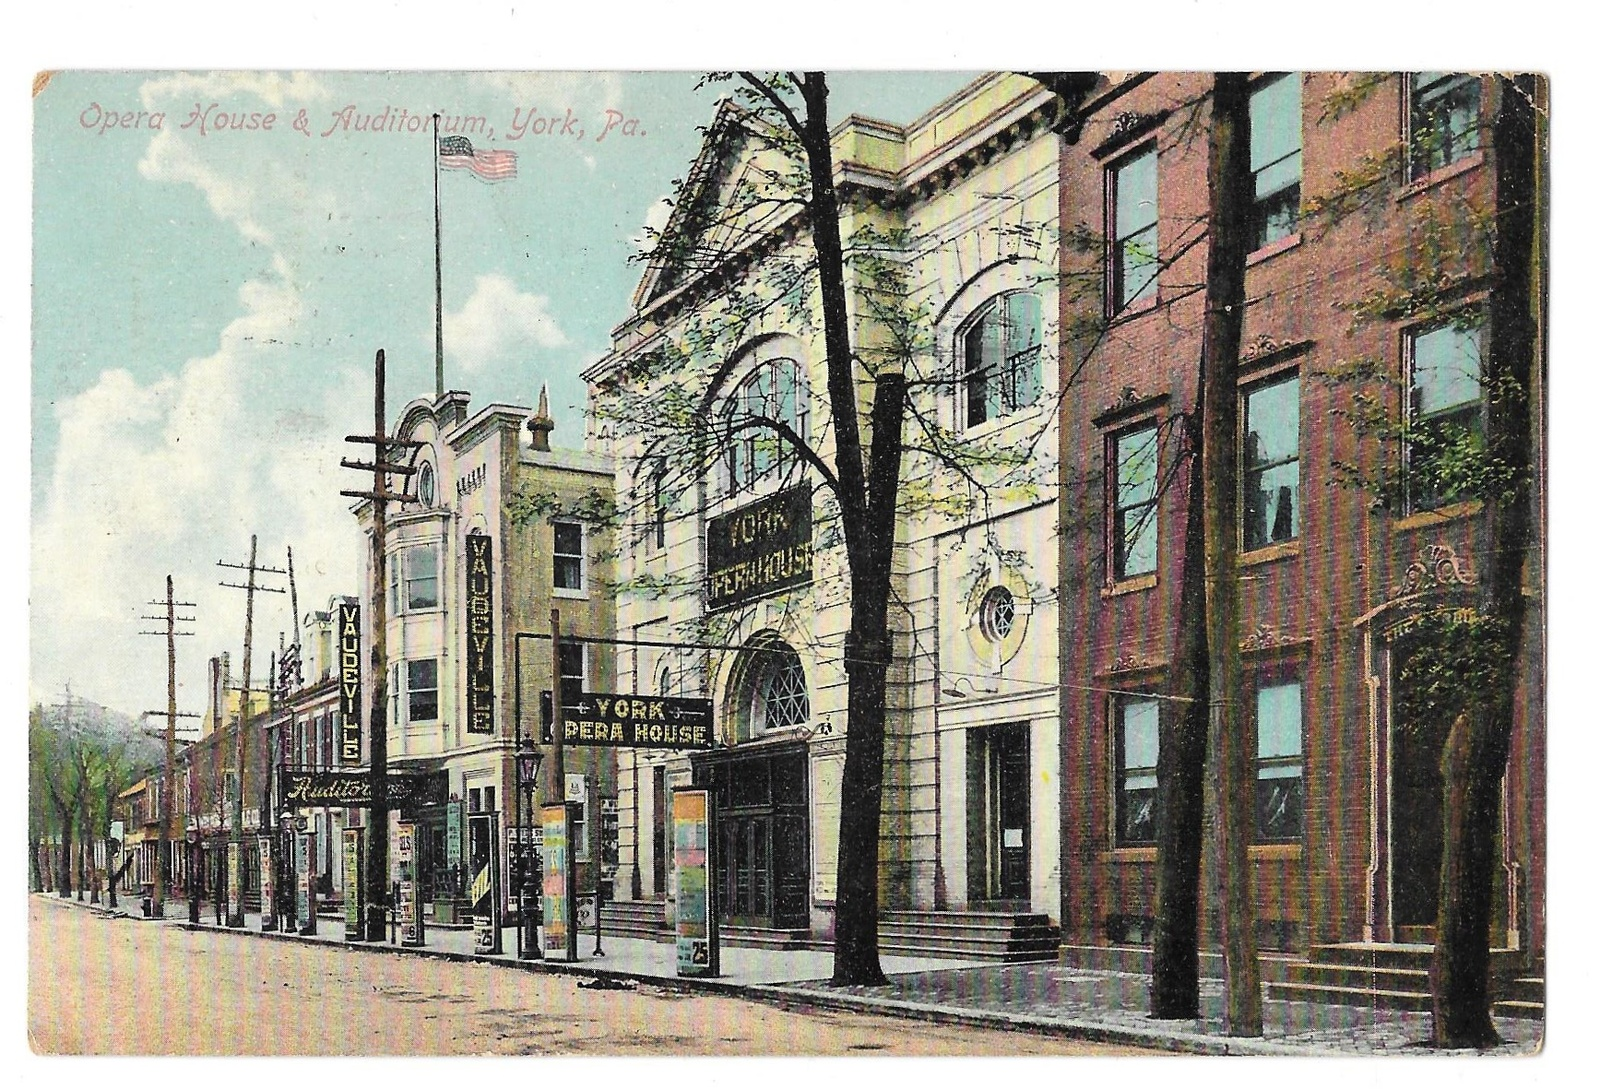 York PA Opera House and Vaudeville Auditorium 1909 Vtg Postcard Made in Germany